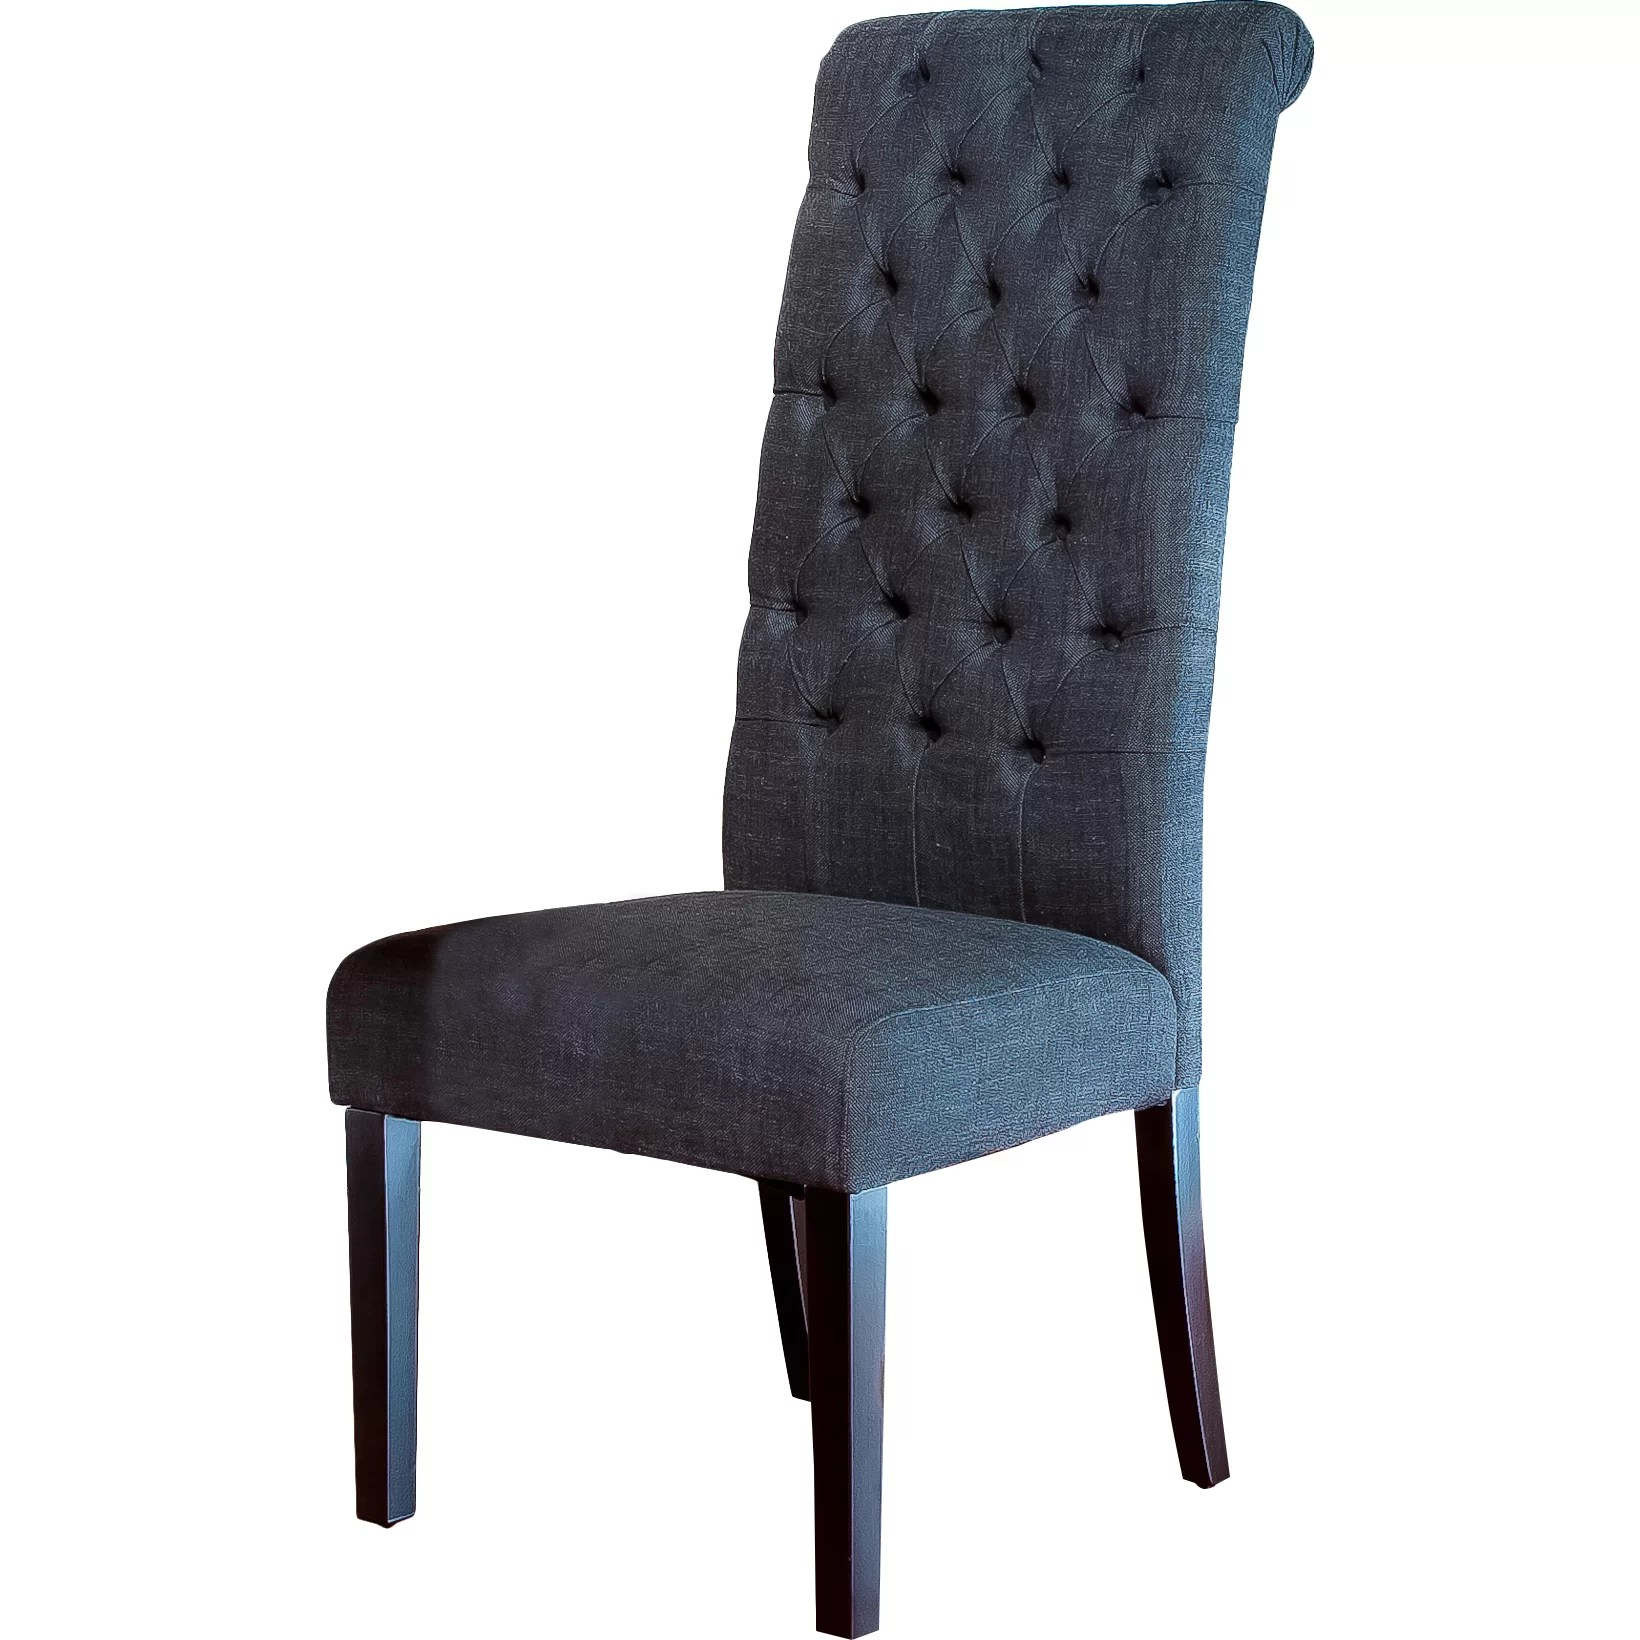 Upholstered Chairs For Dining Room Charlton Home Estbury Tall Tufted Upholstered Dining Chair